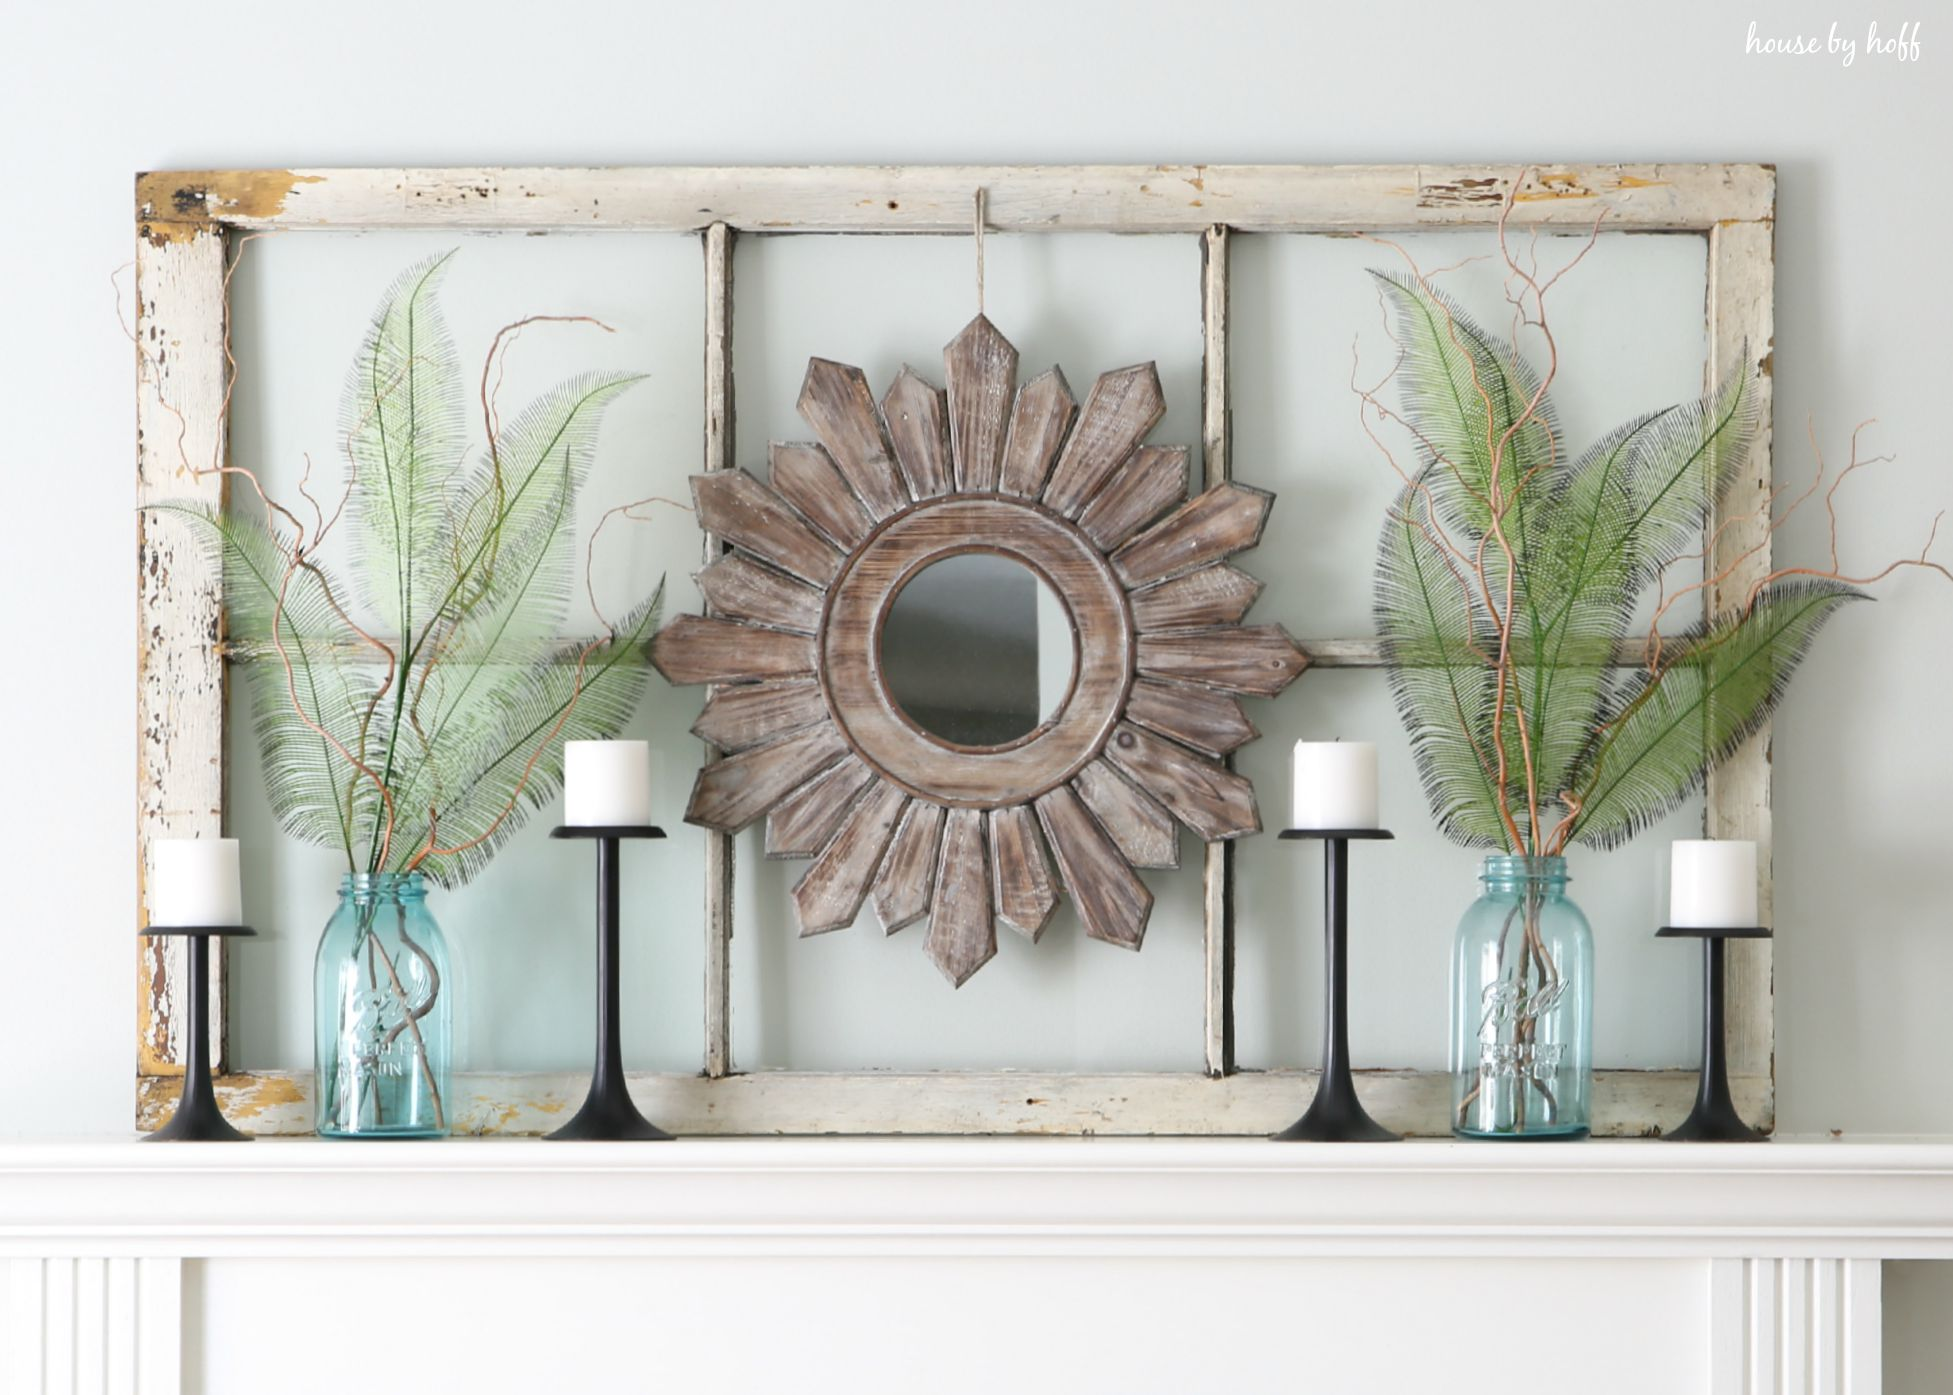 Ideas for Decorating with Old Windows: Old Window Frame ...